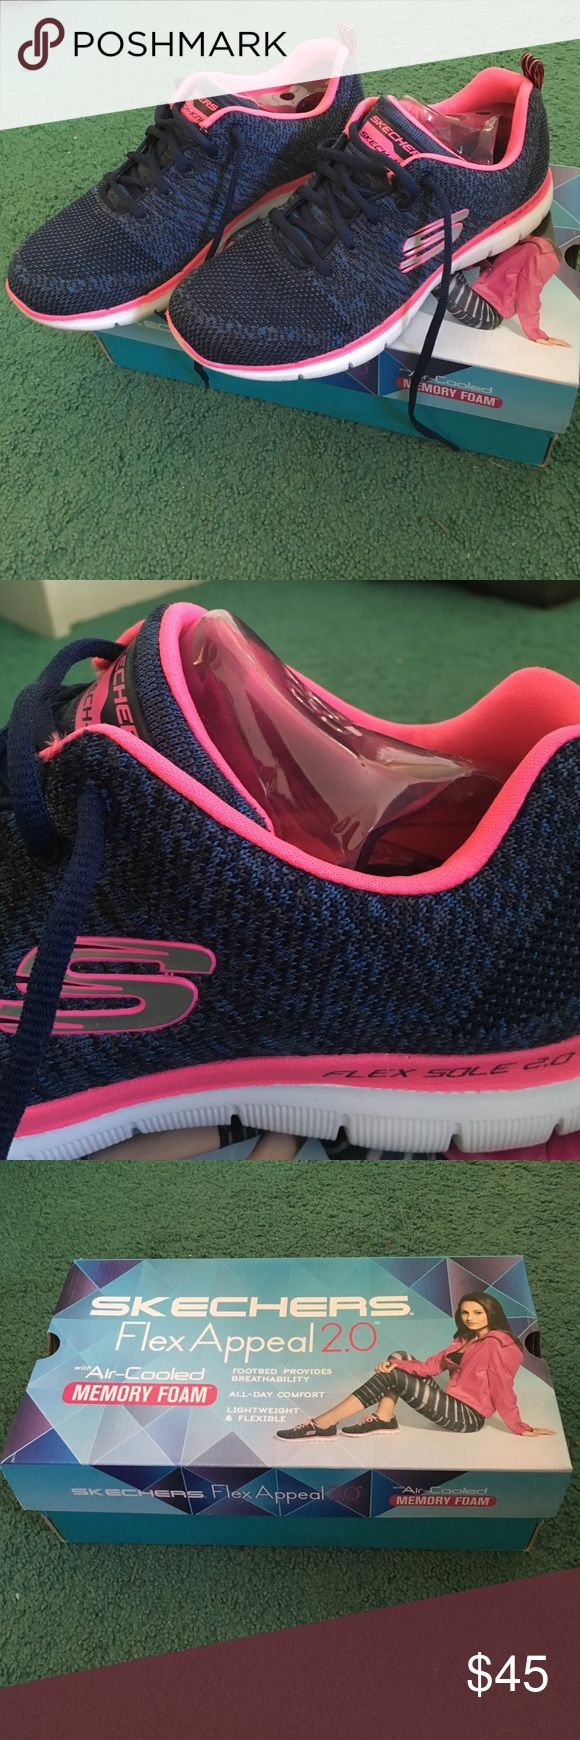 Skechers Flex Appeal 2.0 Sneakers Skechers Women's Flex Appeal 2.0 - High Energy Navy/Pink, Size 8.5 US, comes in original packaging and box, bought online from Zappos, only worn once to a park, knit-look, memory foam, comes with both navy and pink laces Skechers Shoes Sneakers